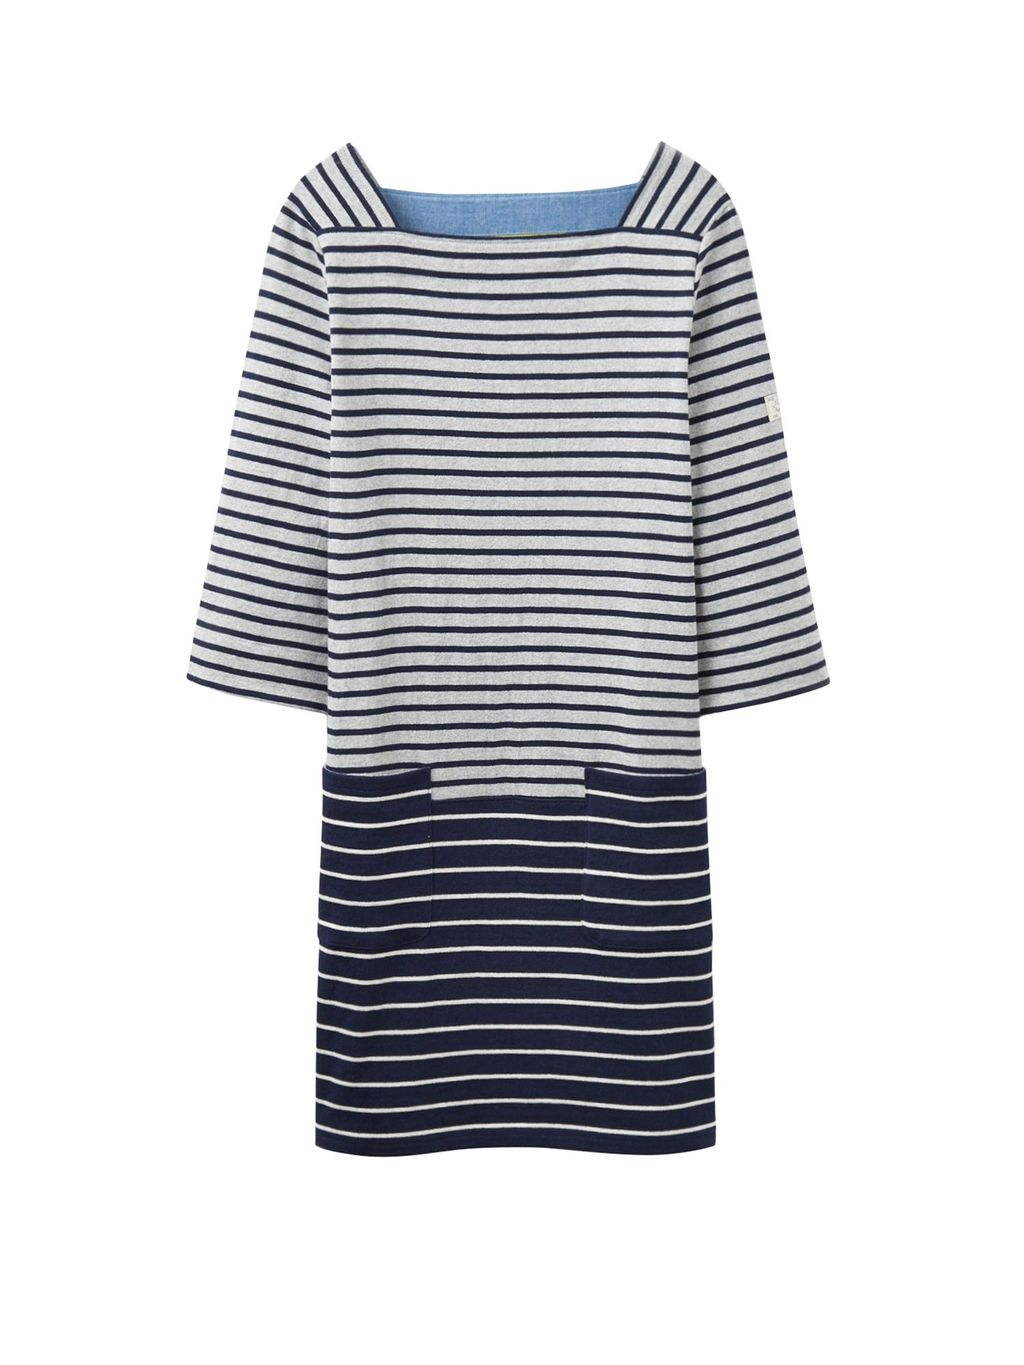 3/4 Sleeve Casual Dress, Grey - style: shift; pattern: horizontal stripes; predominant colour: navy; secondary colour: light grey; occasions: casual; length: just above the knee; fit: body skimming; fibres: cotton - 100%; sleeve length: 3/4 length; sleeve style: standard; neckline: medium square neck; pattern type: fabric; texture group: other - light to midweight; multicoloured: multicoloured; wardrobe: basic; season: a/w 2016